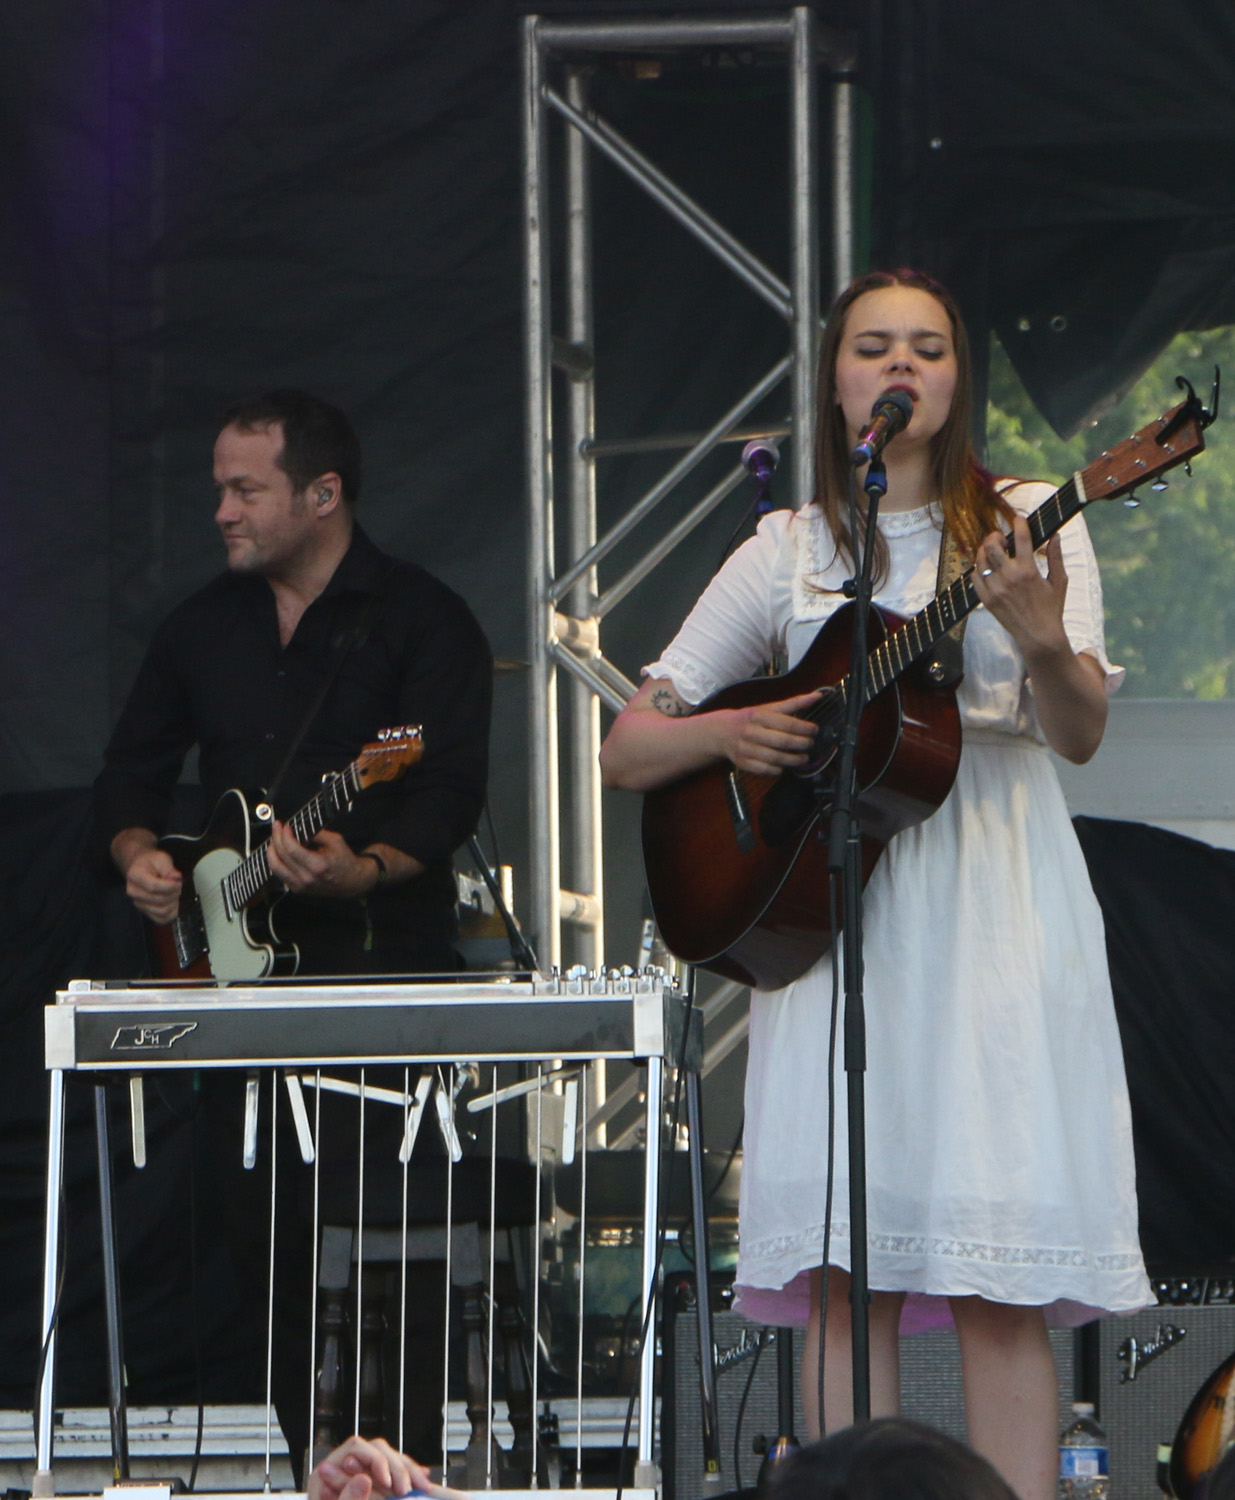 Melvin Duffy , left, and Klara Söderberg, right, of First Aid Kit perform at the Sloss Music & Arts Festival in Birmingham, Ala., on Saturday, July 18, 2015. (MTSU Sidelines / John Connor Coulston)